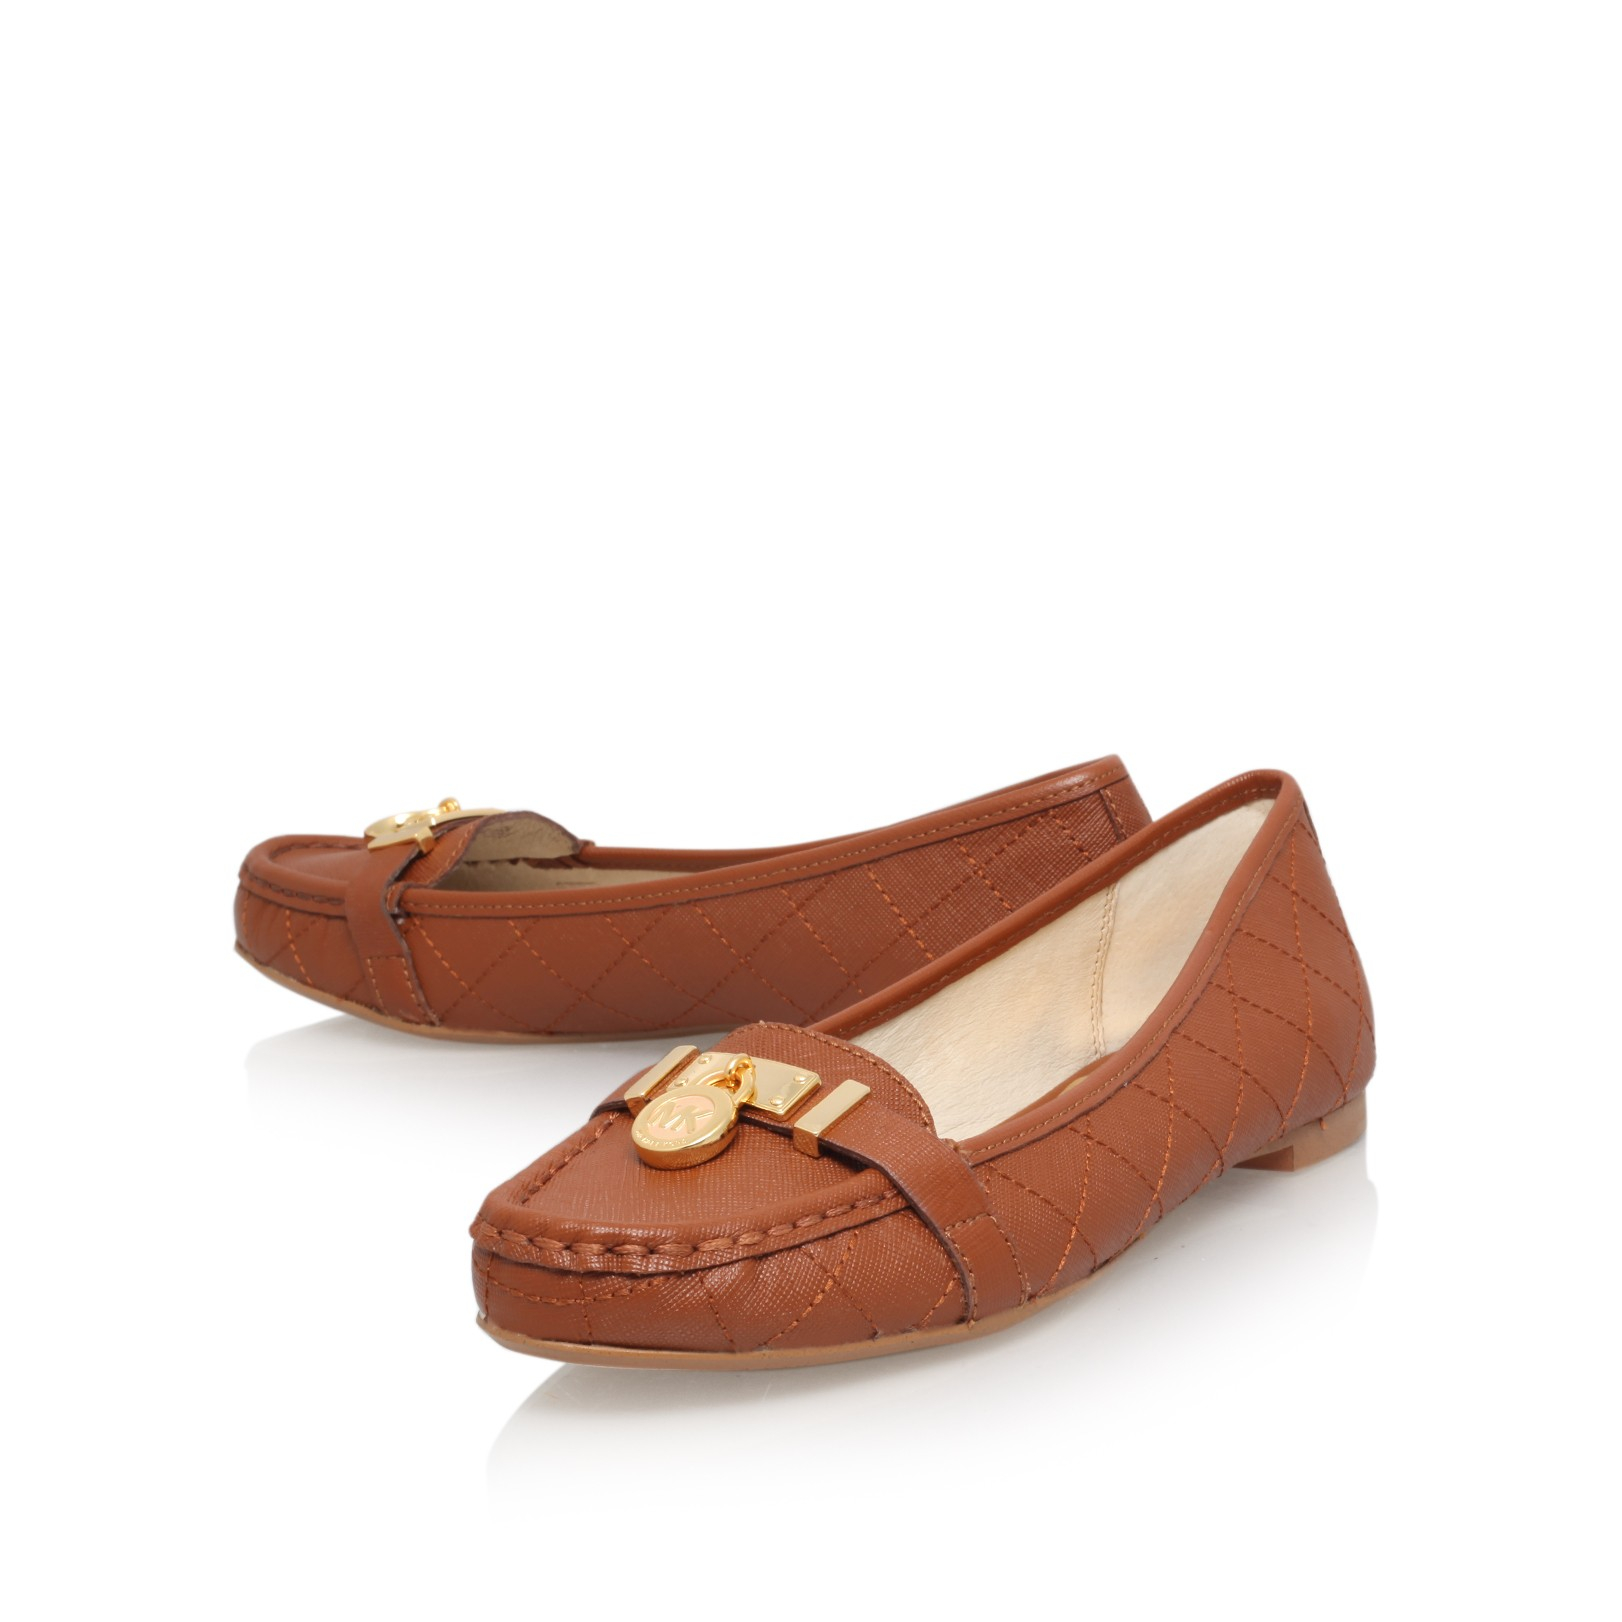 3a0d27c4977 MICHAEL Michael Kors Hamilton Loafer in Brown - Lyst